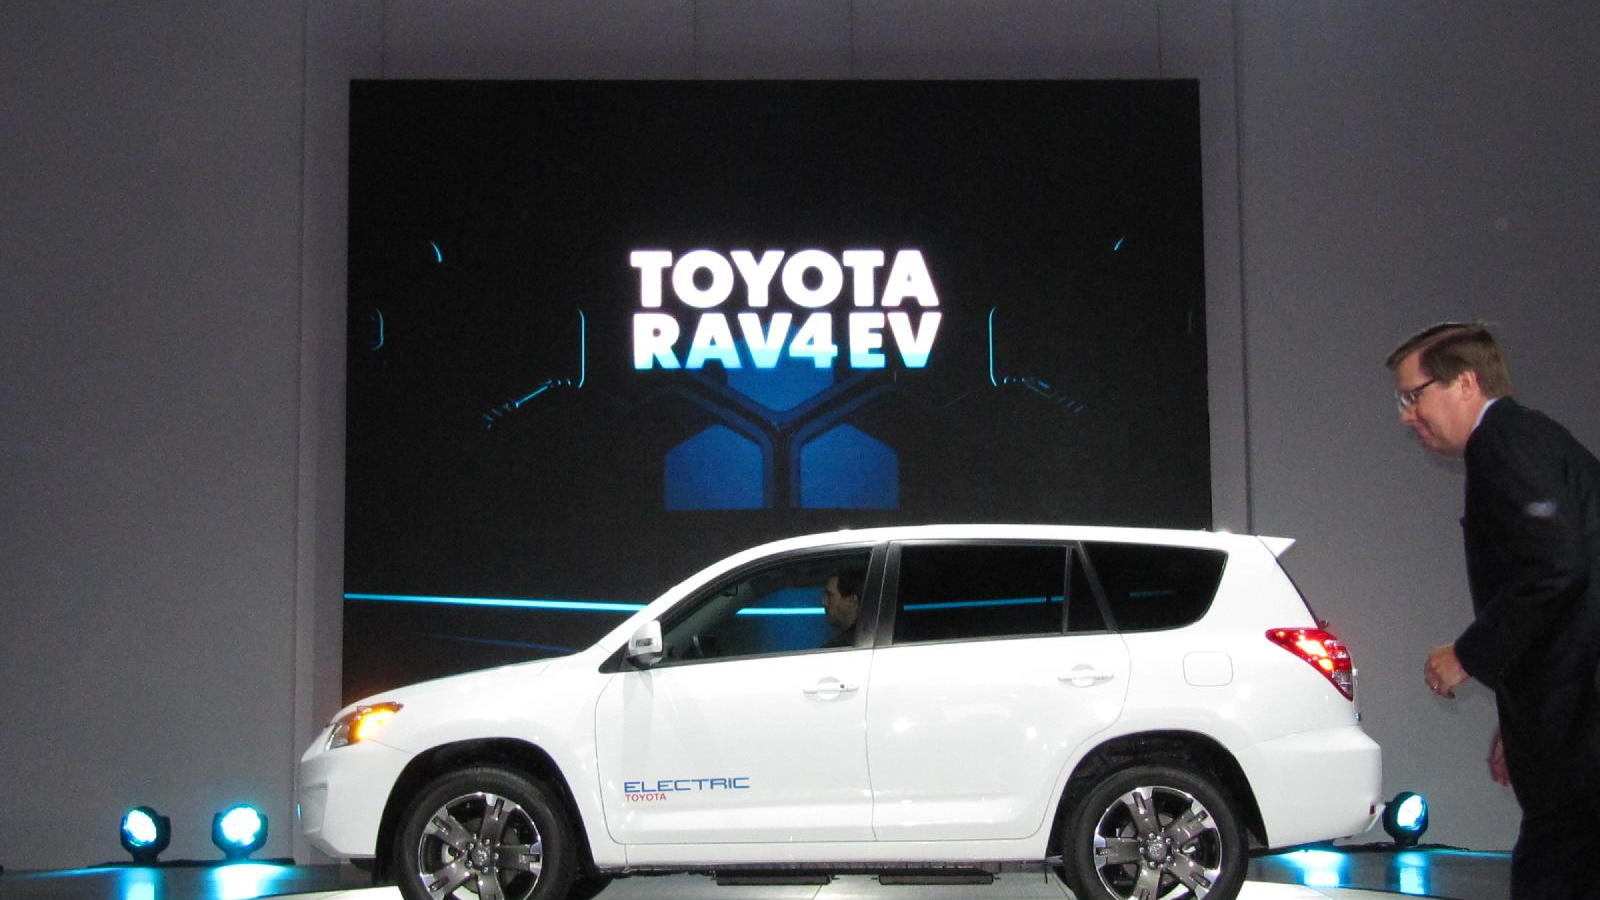 2012 Toyota RAV4 EV powered by Tesla, at 2010 Los Angeles Auto Show